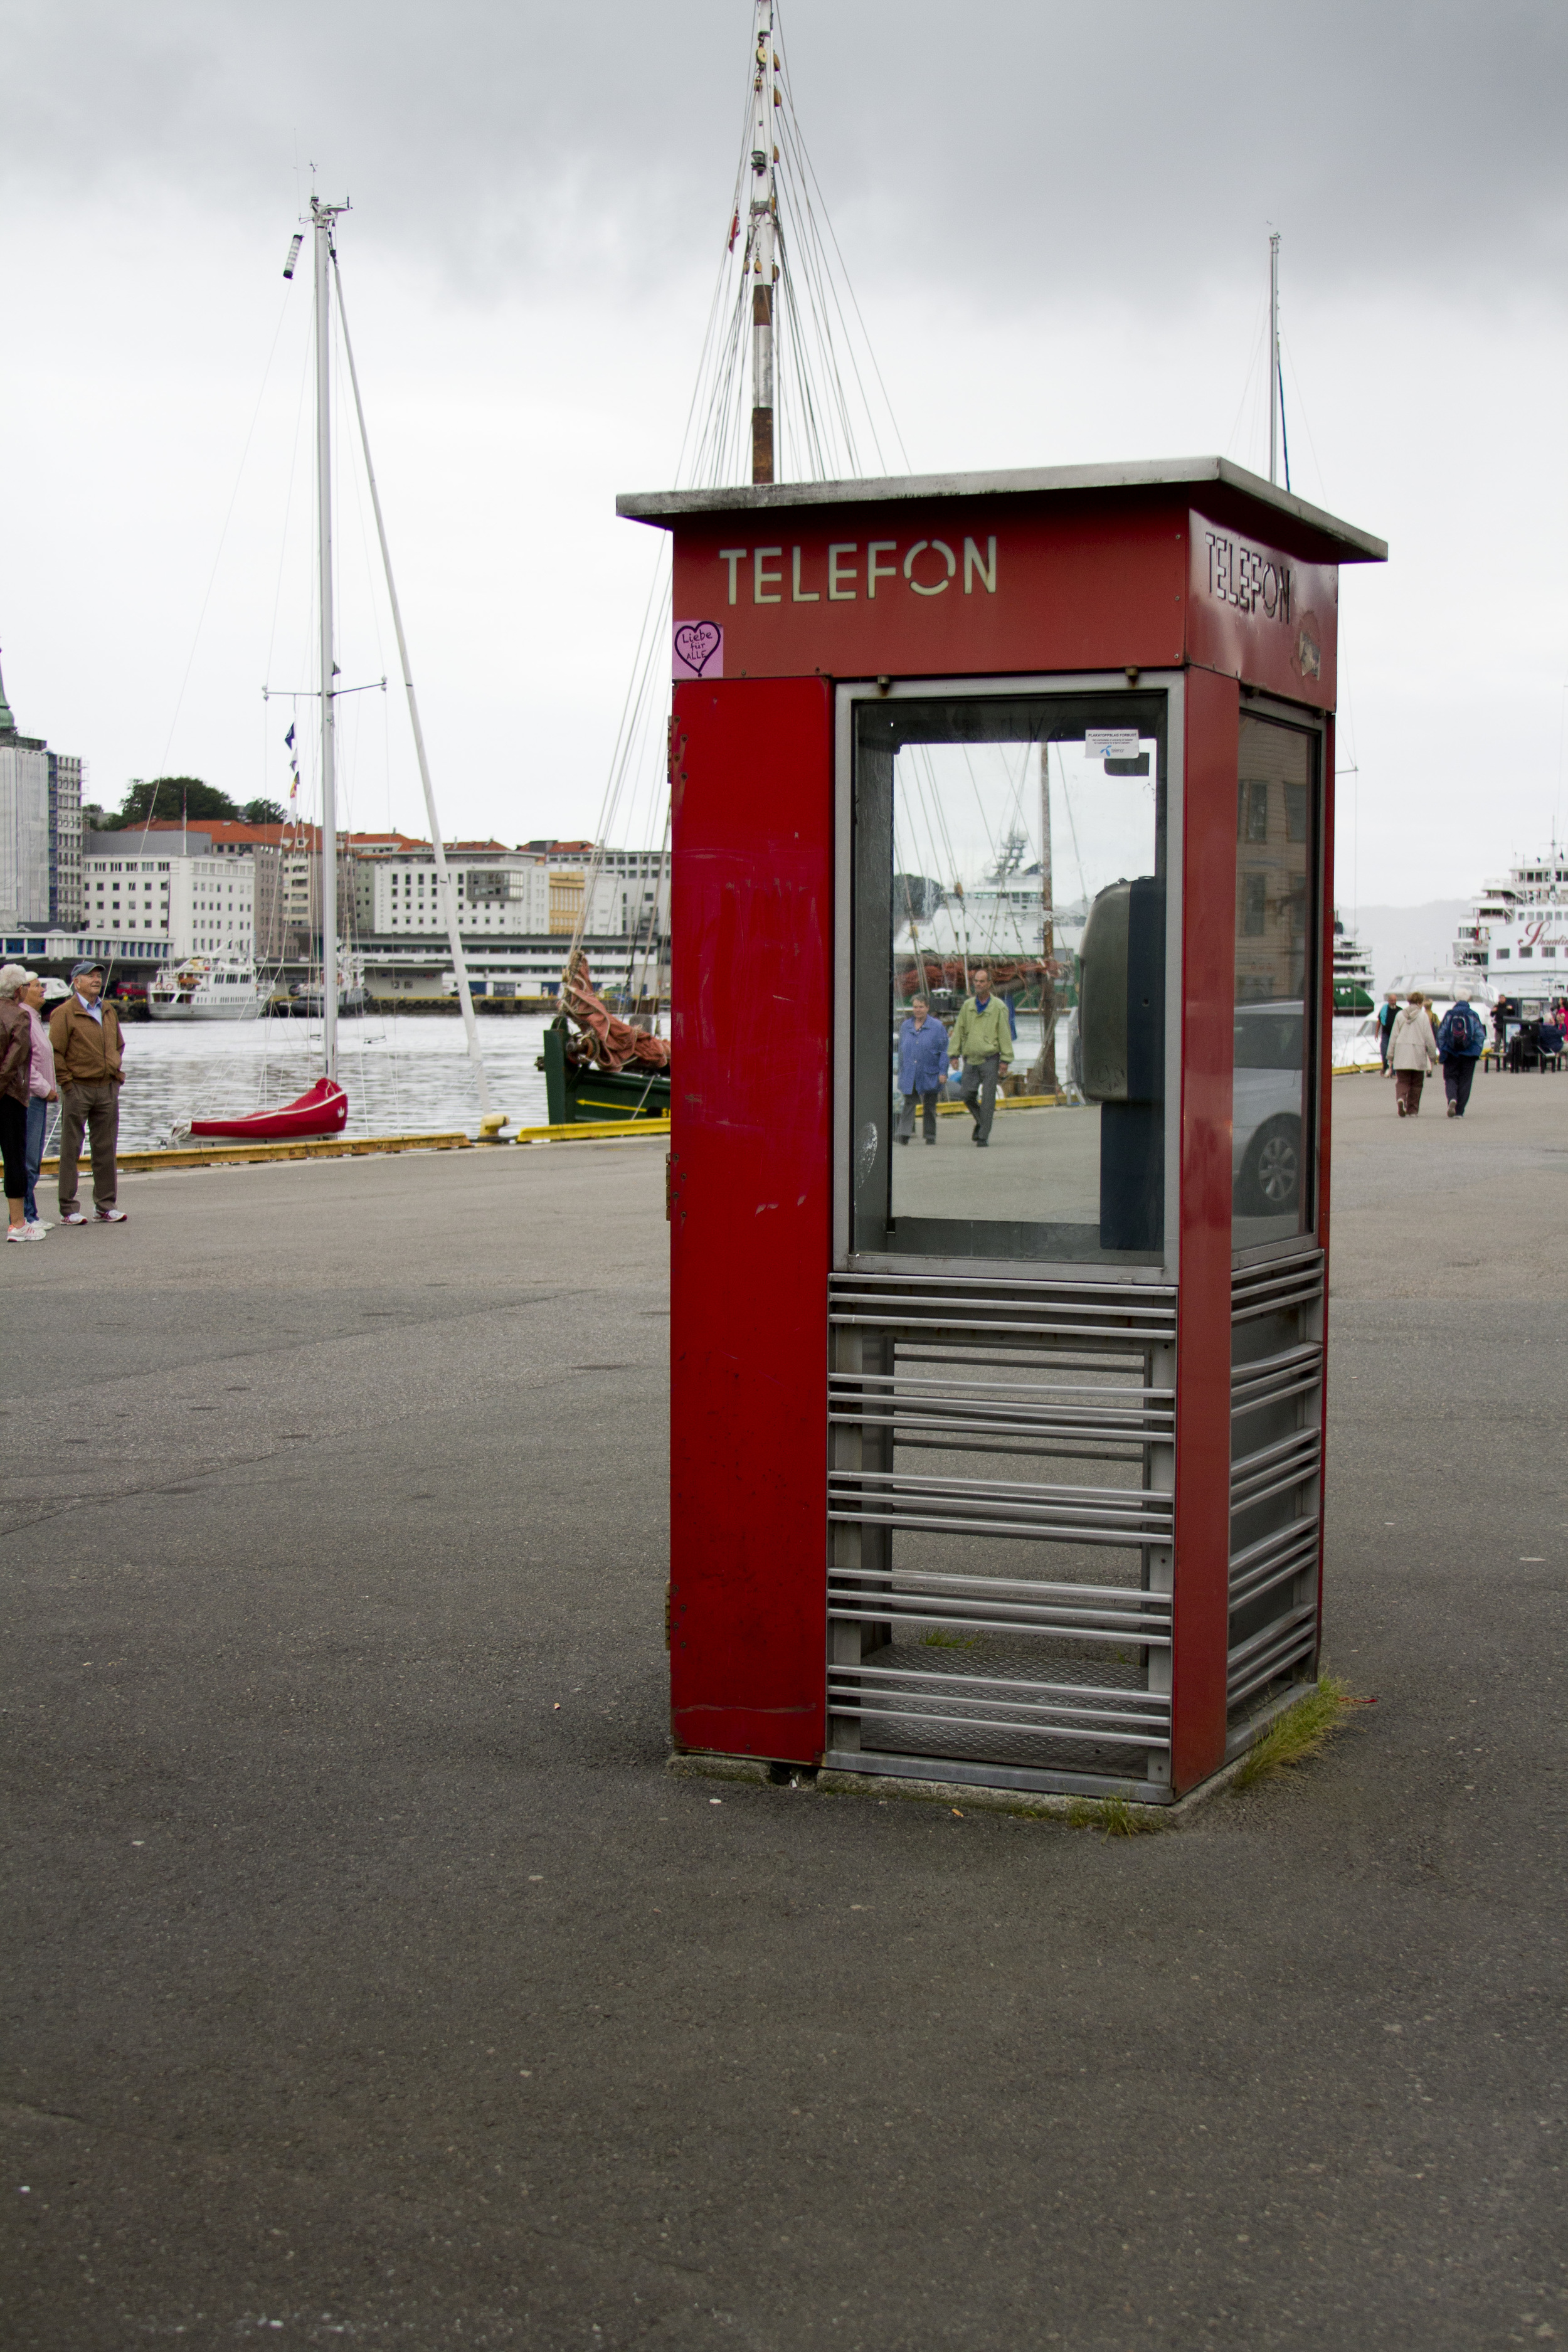 f/3.5  ISO 400  30mm  1/750   5. In today's hi-tech world of smart phones, it was a novelty to find a phone box. It was unused , so I waited until I could capture two people in the window, albeit outside opposite. For me it signifies the remoteness of Bergen.